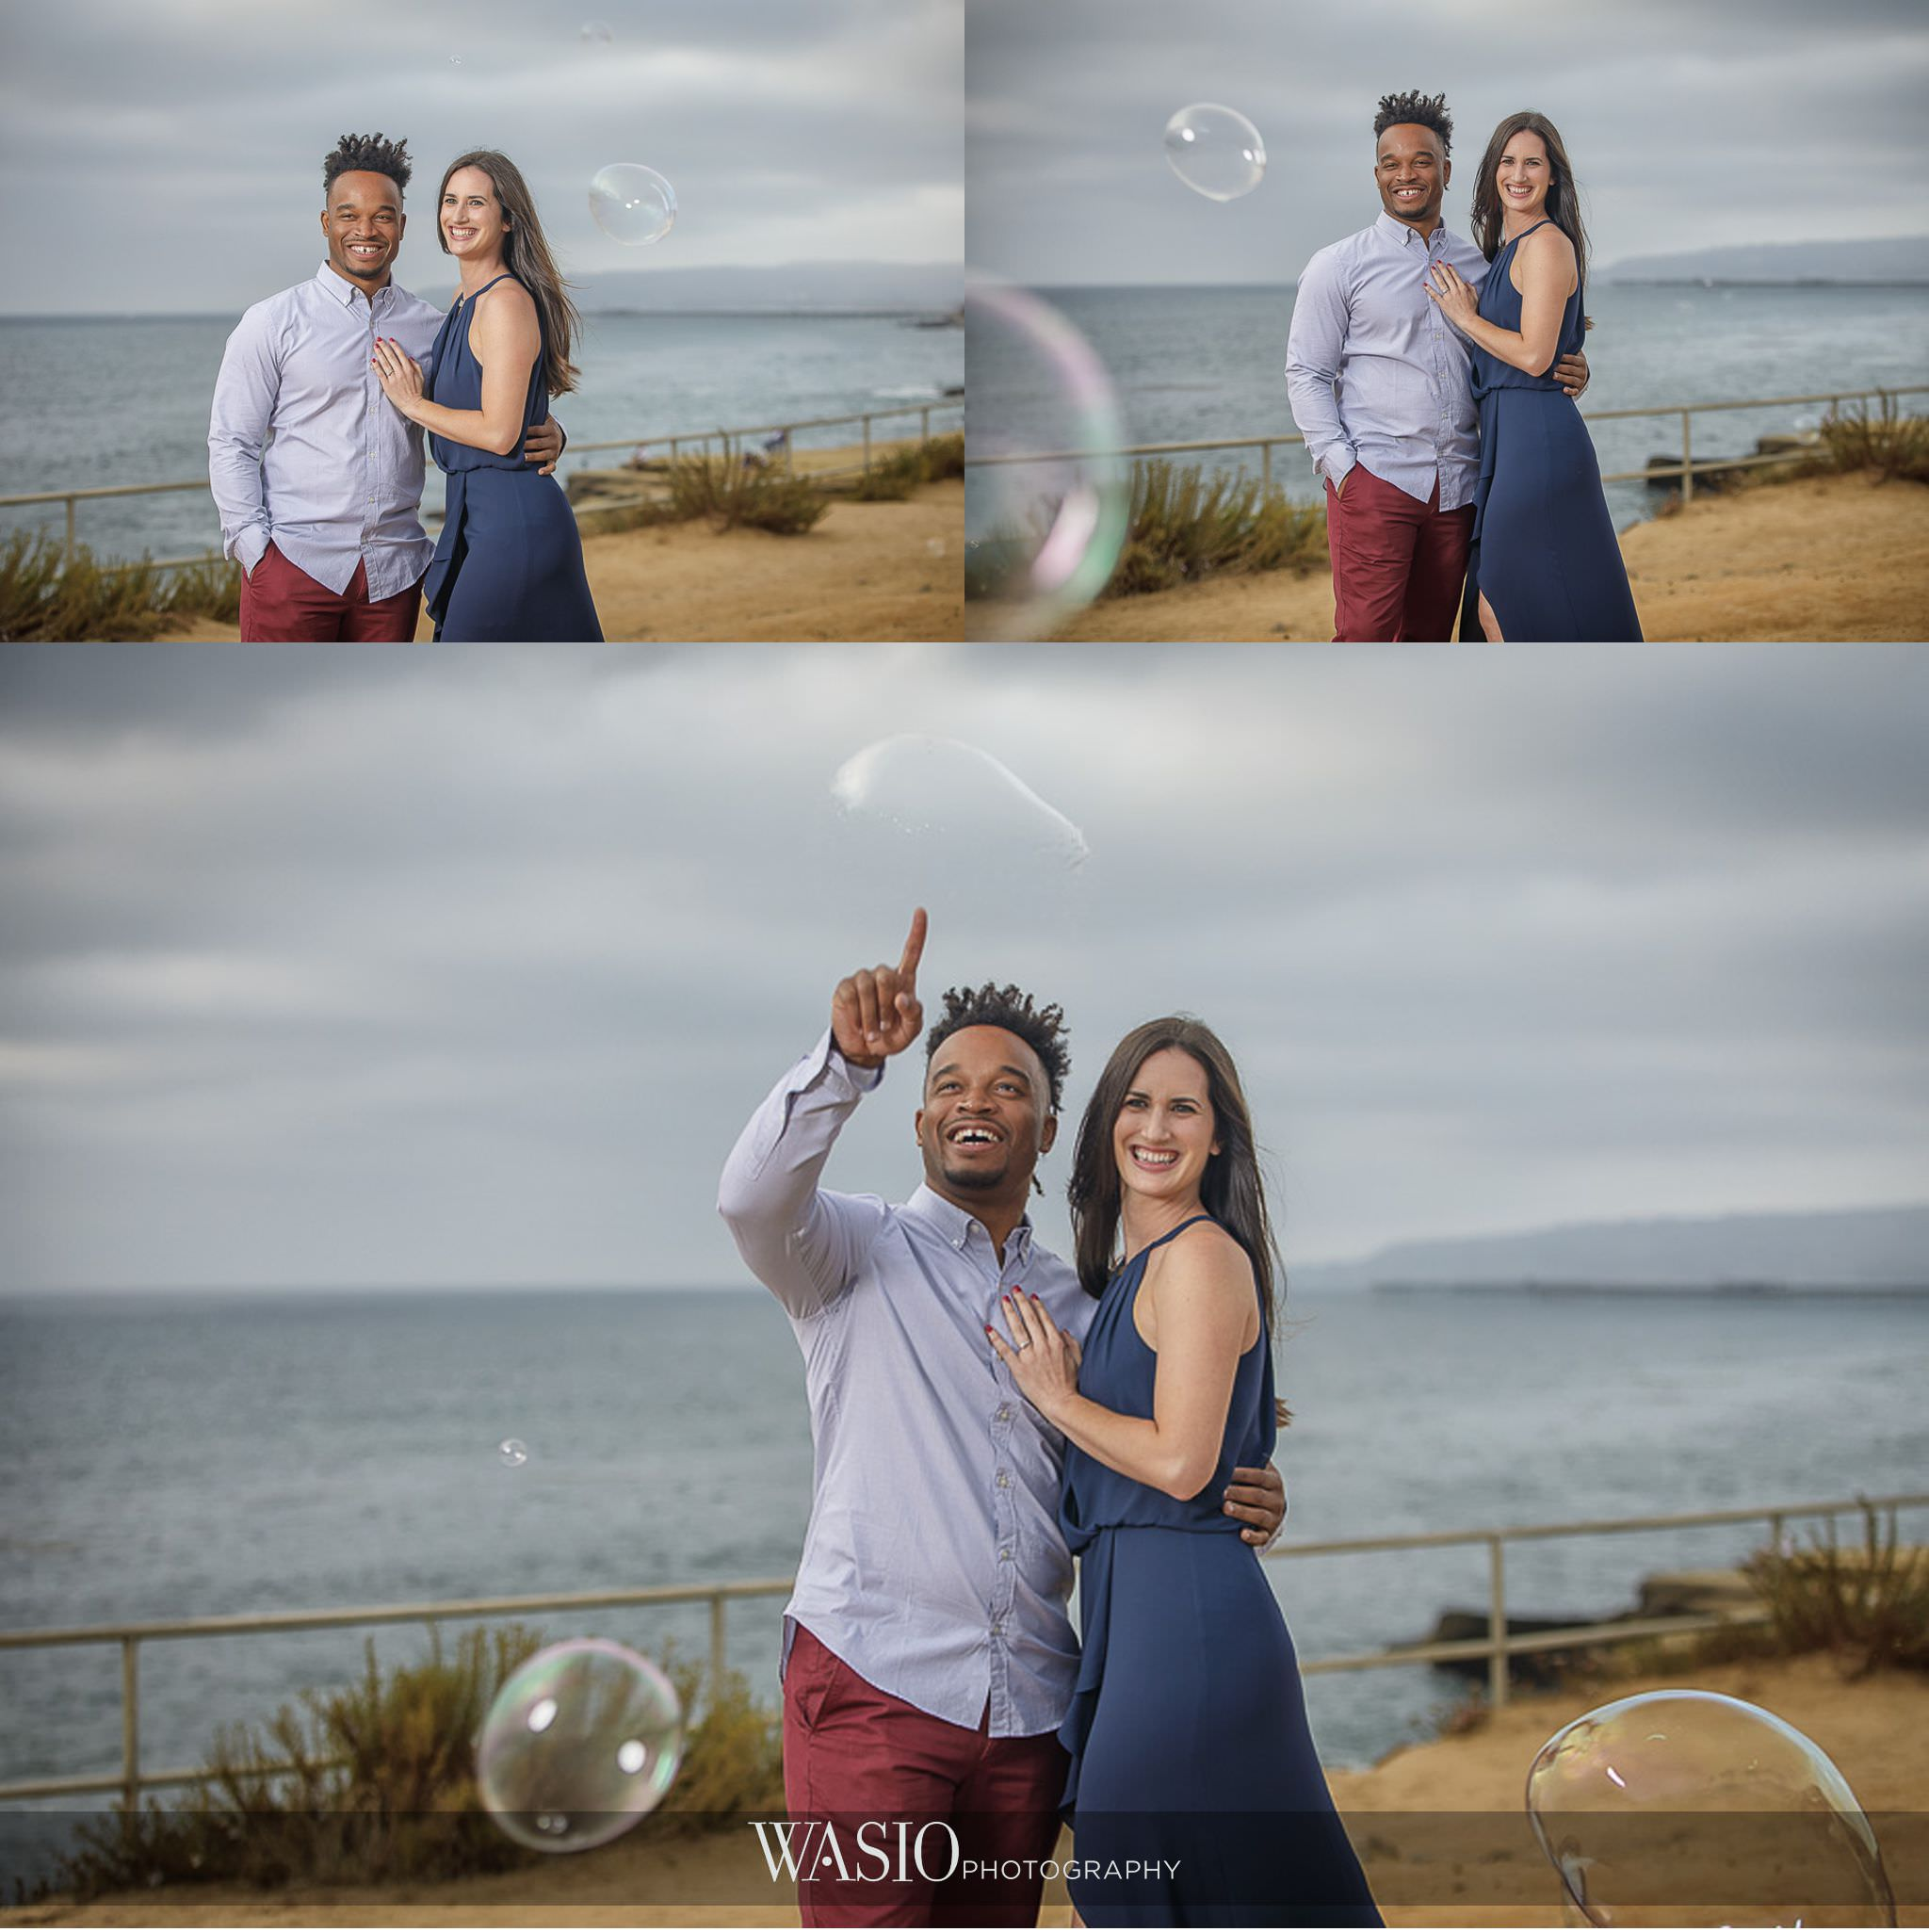 Sunset-Cliffs-San-Diego-Engagement-bubbles-photojournalism-fun-moment-58 Sunset Cliffs San Diego Engagement - Laura and La Broi